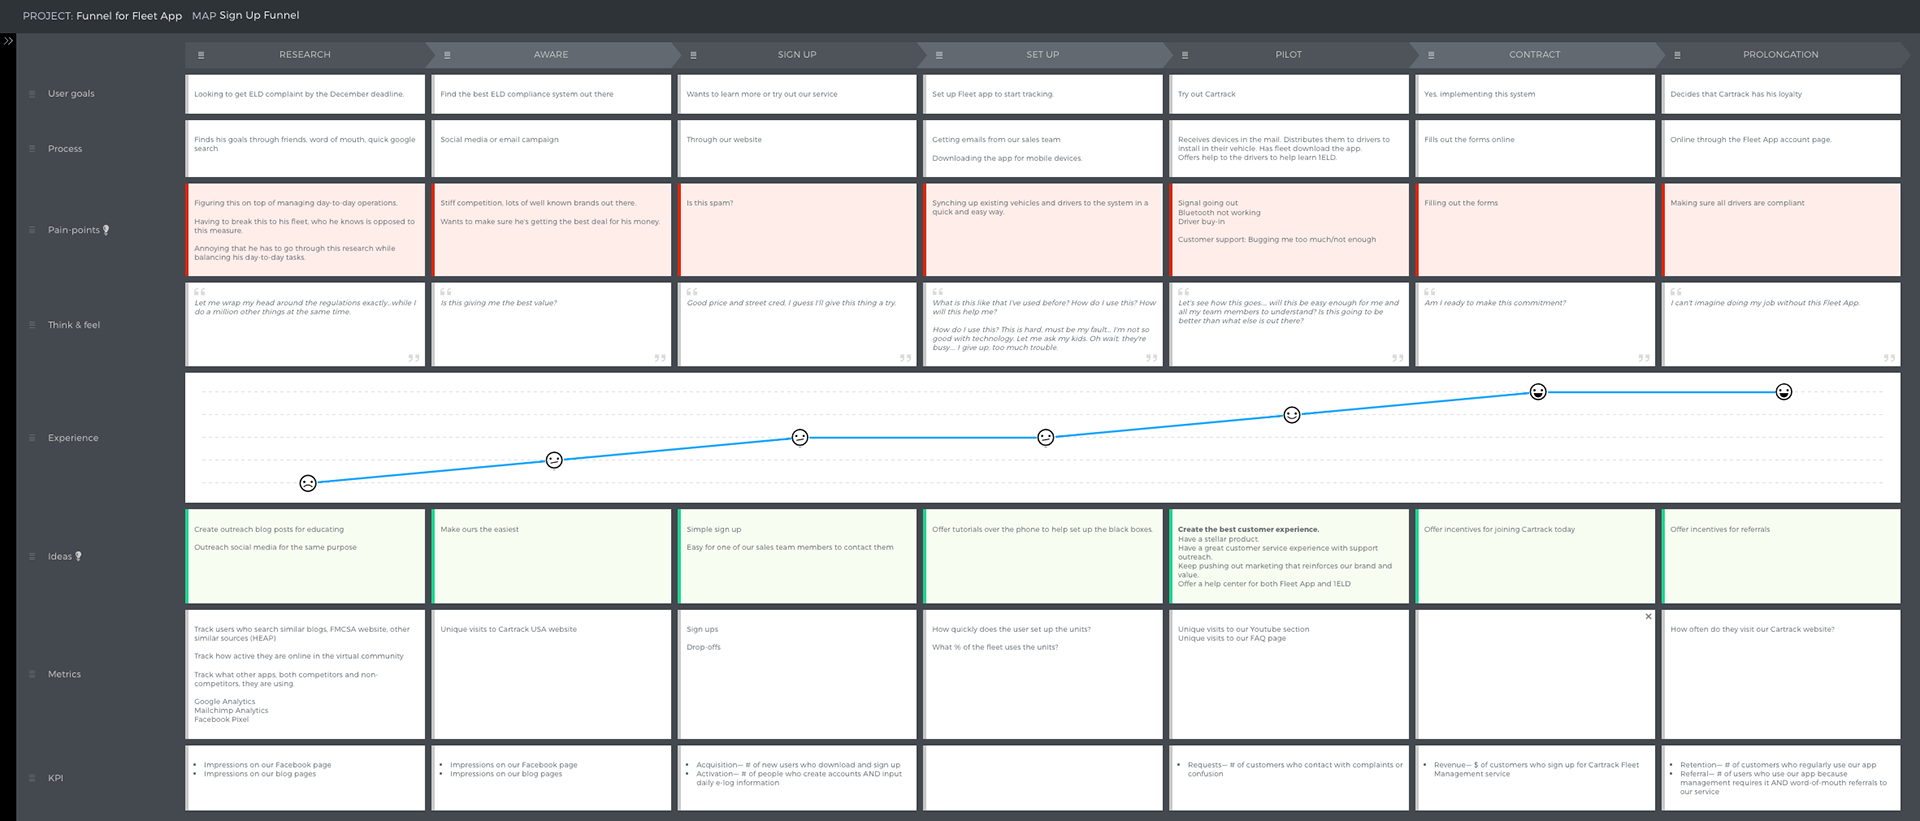 User journey map of the fleet manager signing up for an ELD.